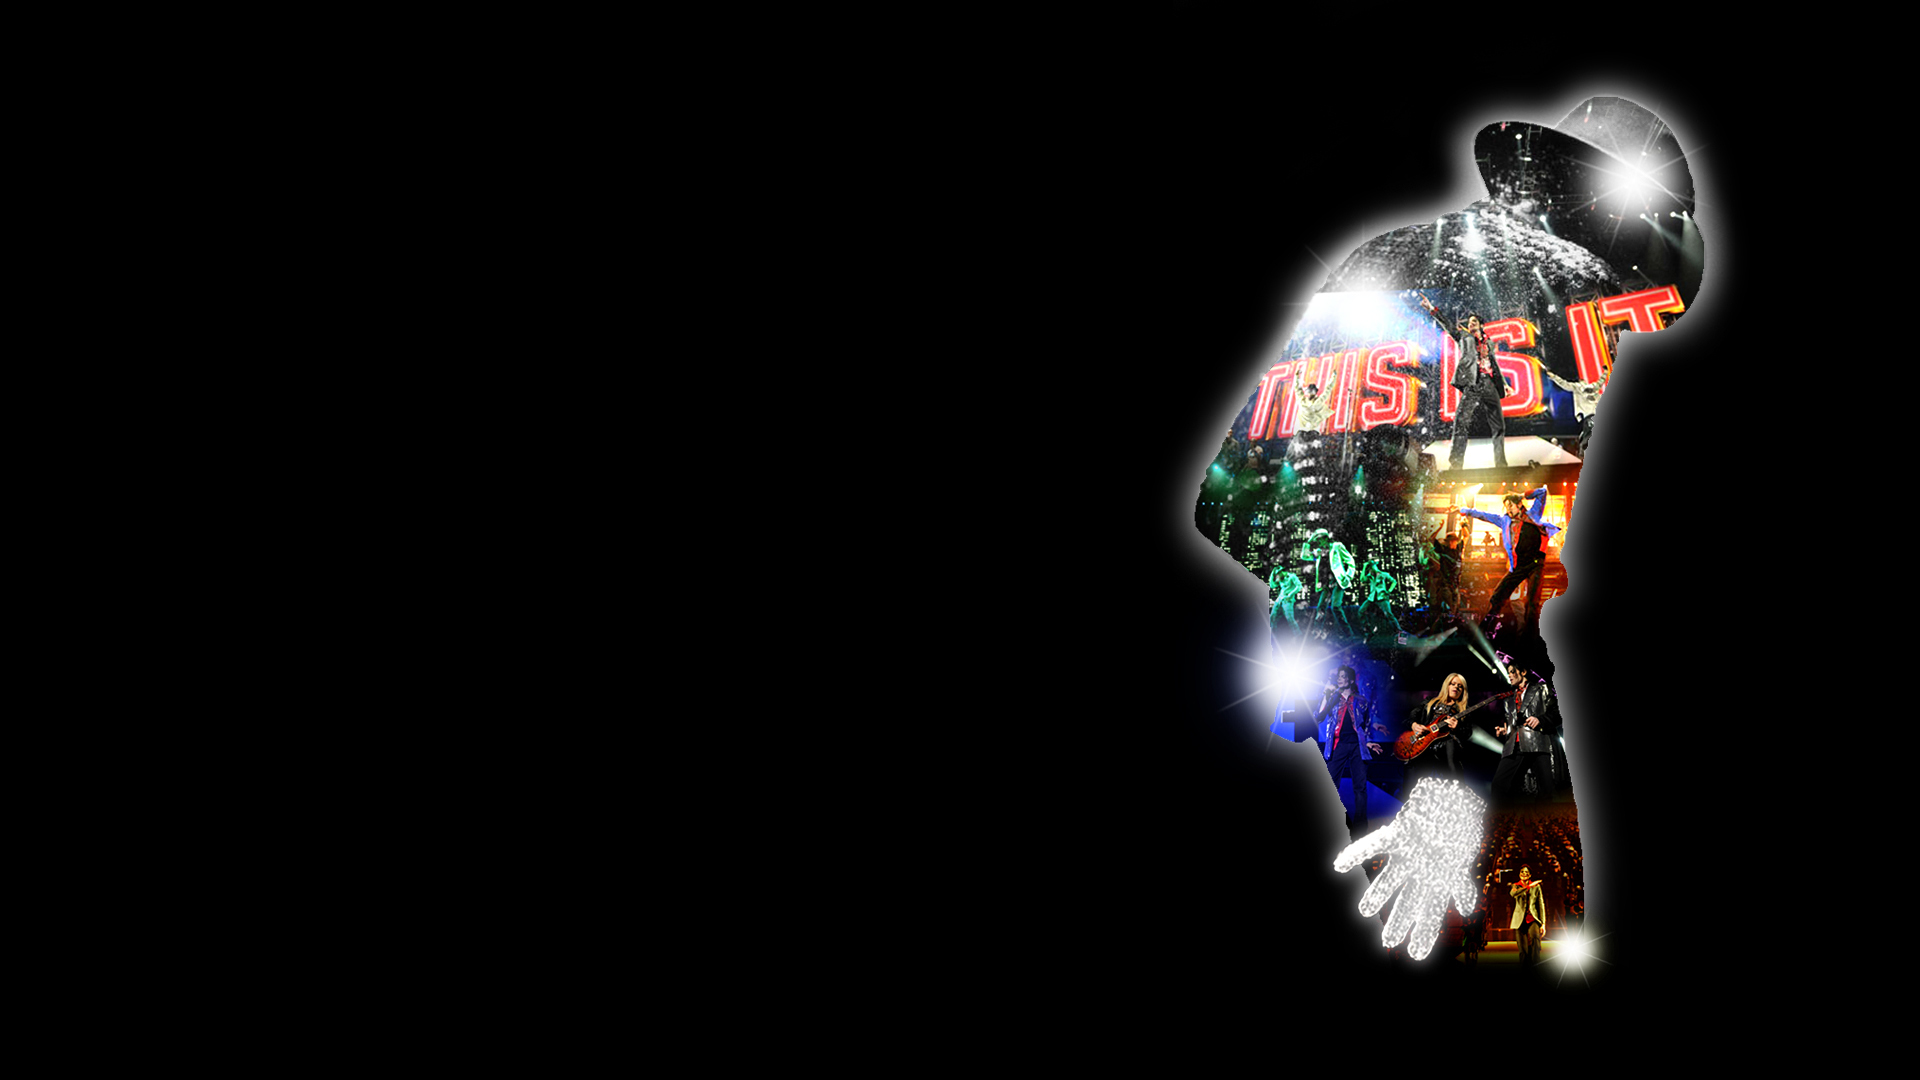 michael jackson images this is it 2 hd wallpaper and